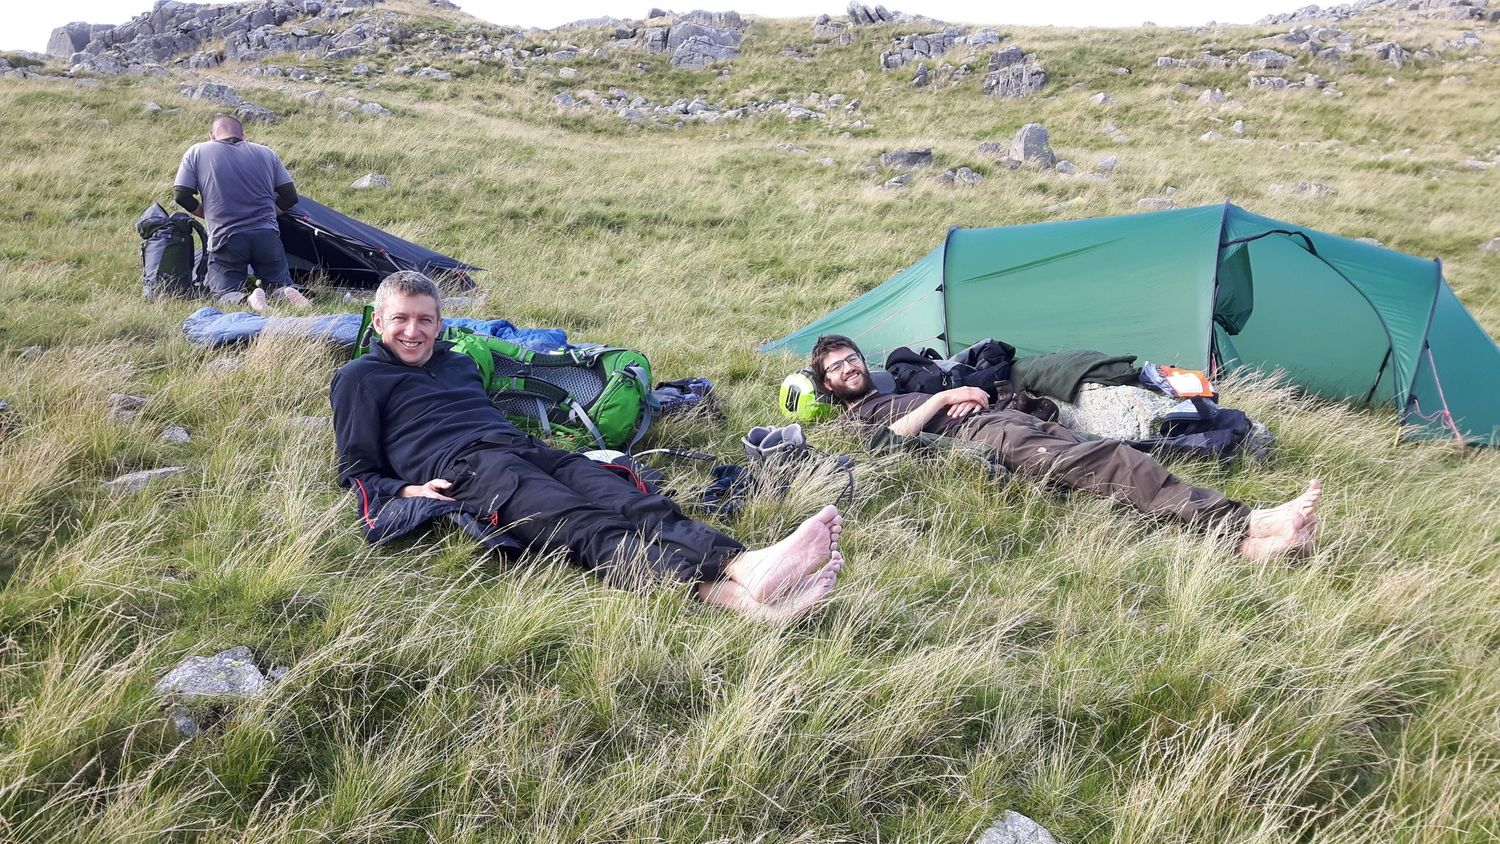 Mountain leader training candidates taking a well earned rest at the campsite